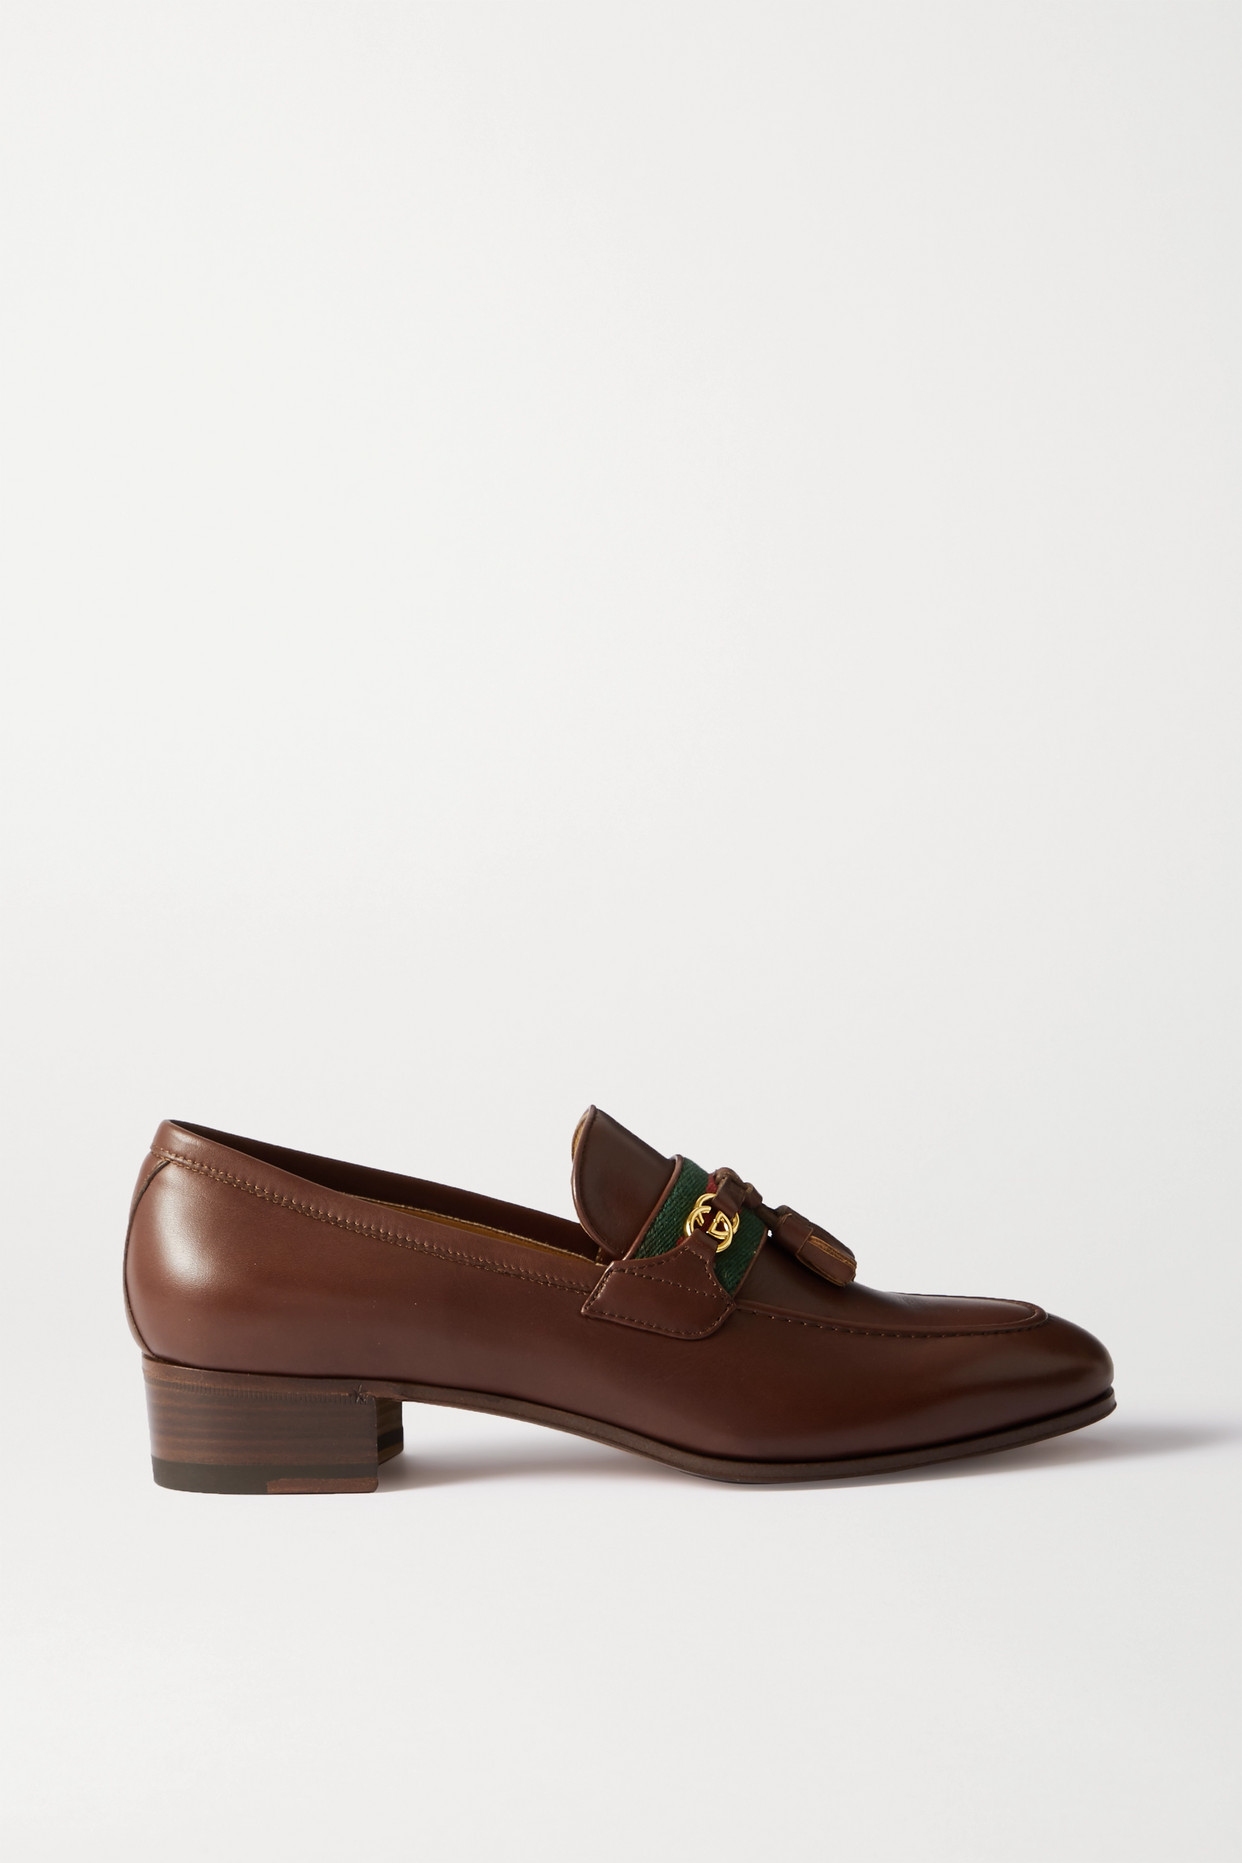 GUCCI - Paride Logo-detailed Grosgrain-trimmed Leather Loafers - Brown - IT37.5